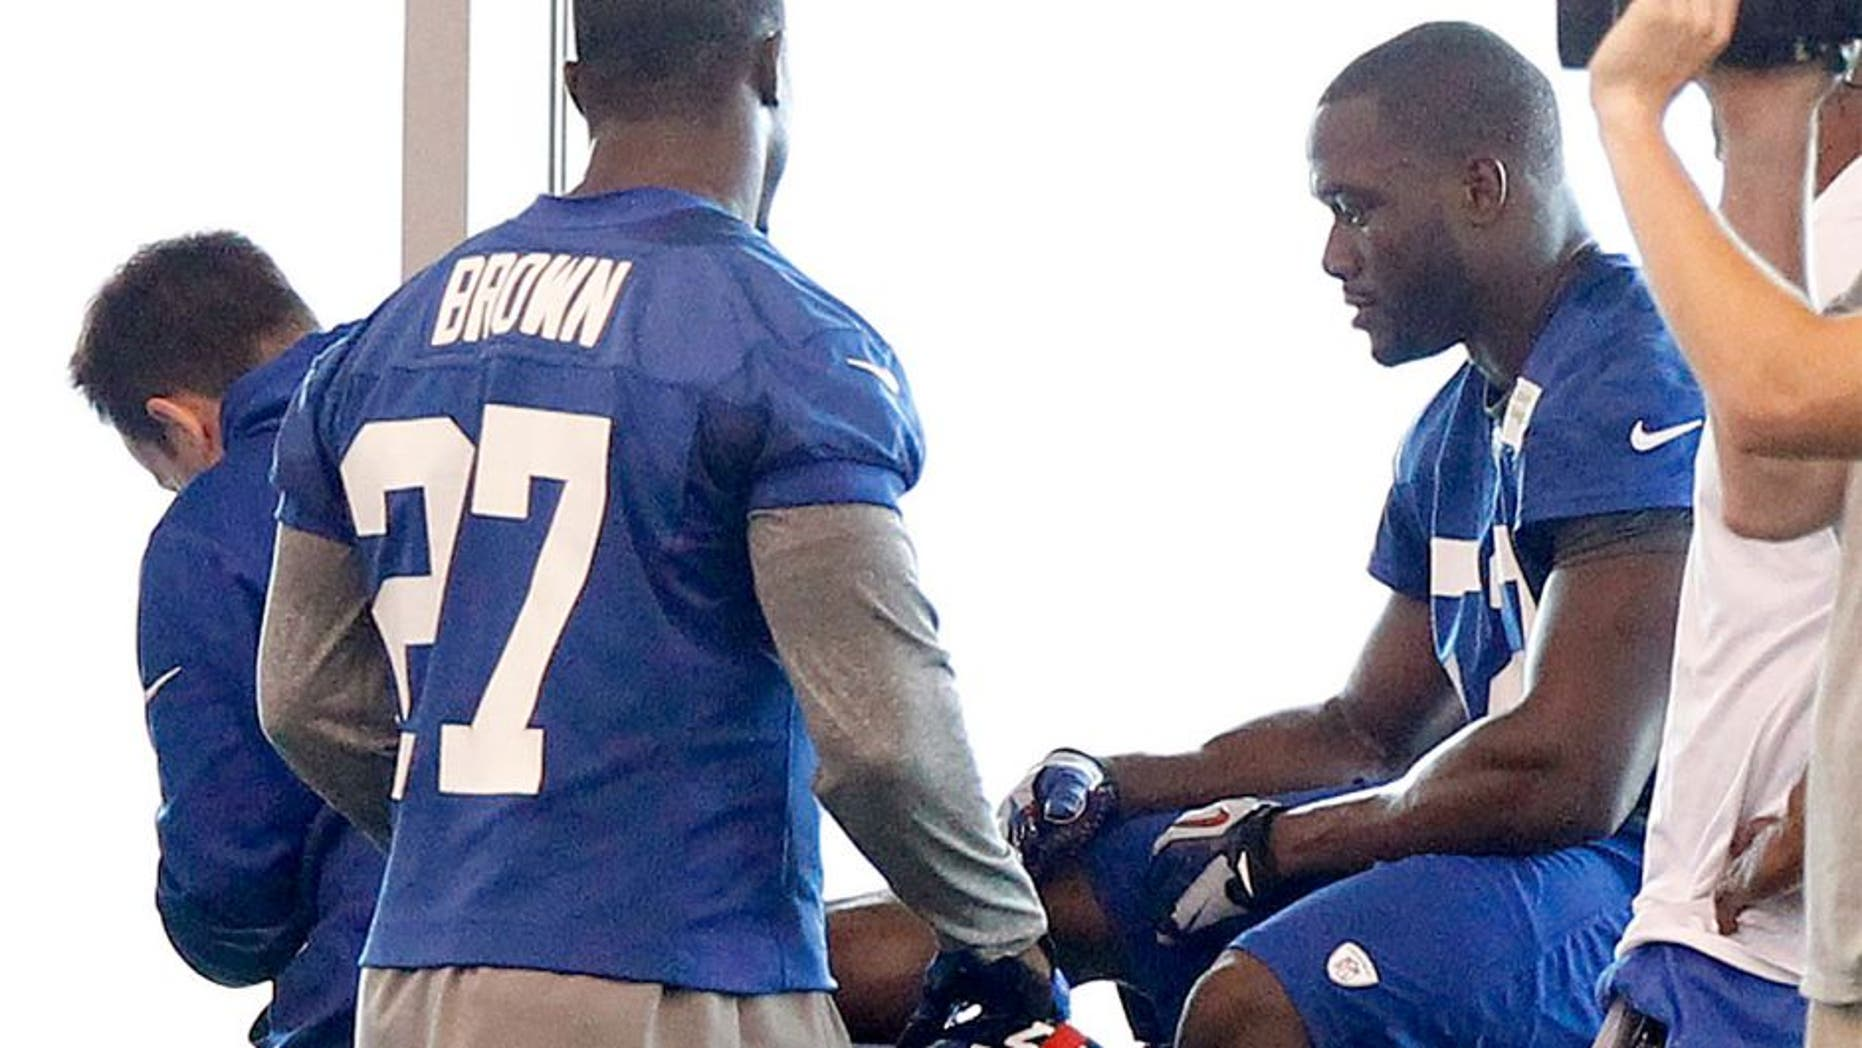 Jun 12, 2014; East Rutherford, NJ, USA; New York Giants outside linebacker Jon Beason (52) is tended to on the sidelines during New York Giants minicamp at the Quest Diagnostics Training Center. William Perlman/The Star-Ledger-USA TODAY Sports